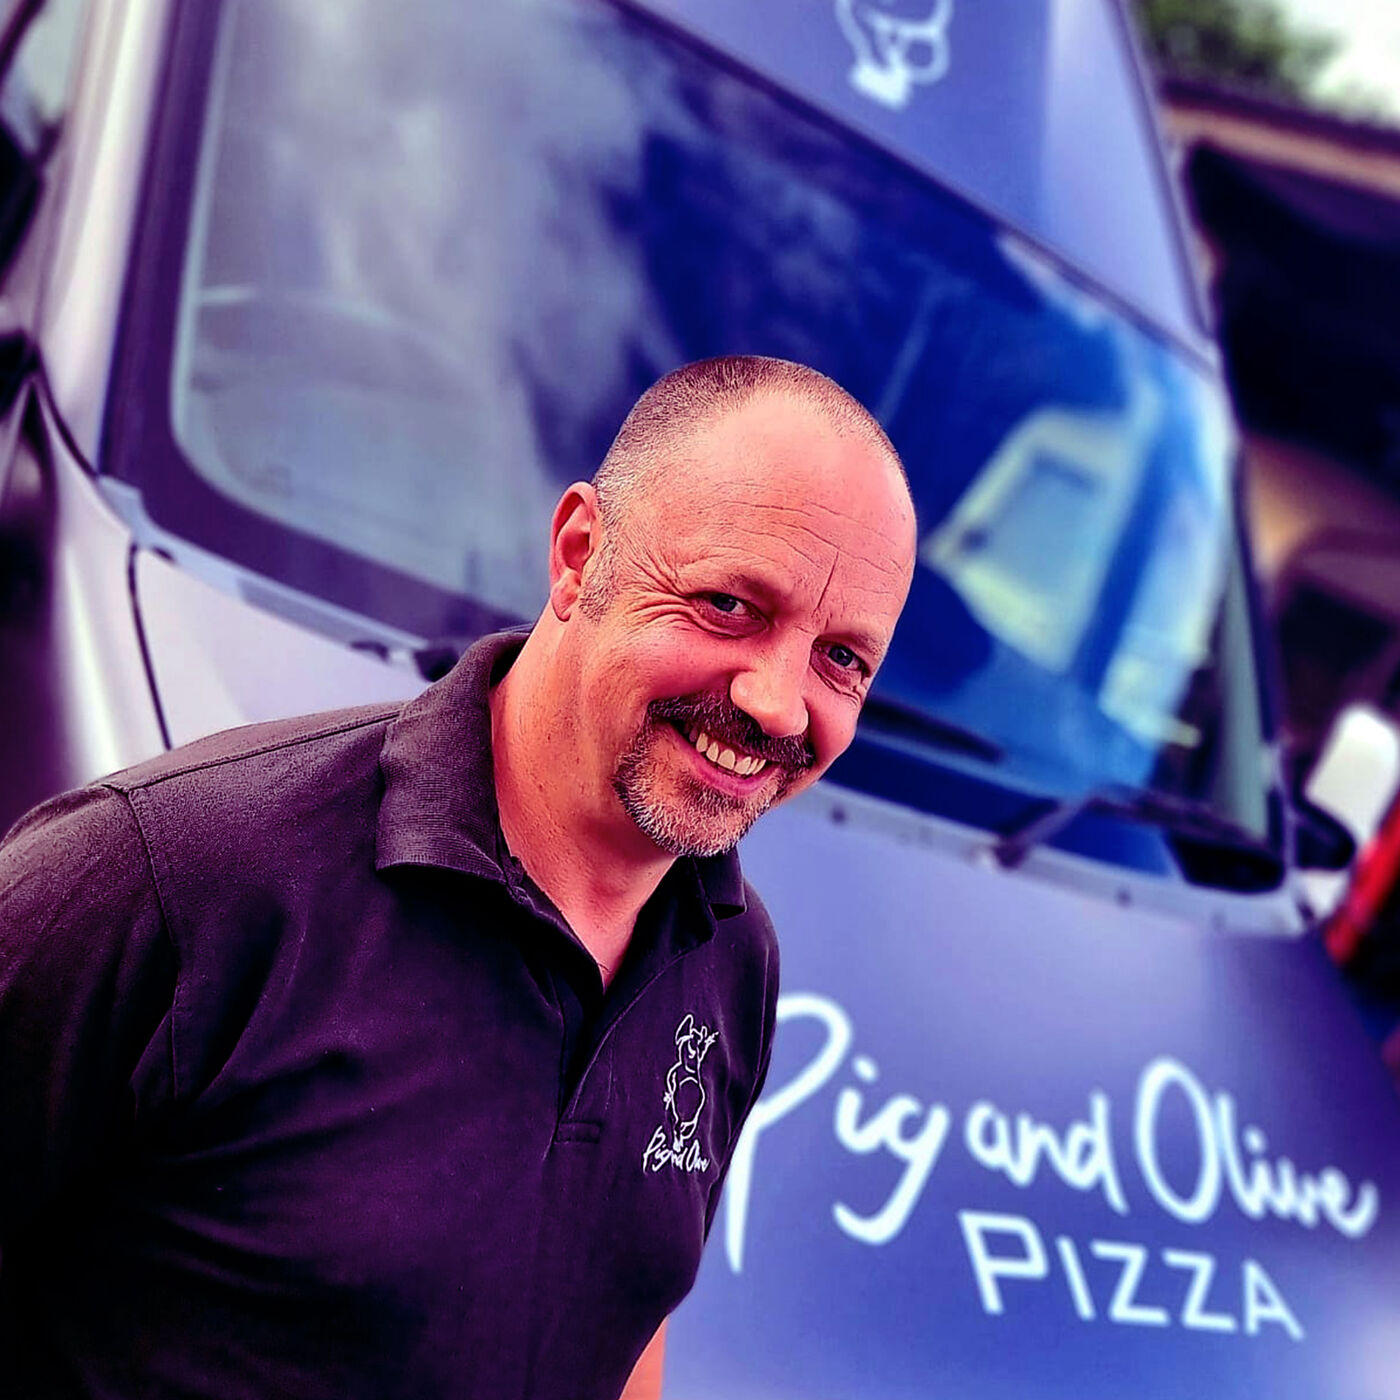 Interview with Pig & Olive mobile and bricks & mortar pizza business entrepreneur Simon Harris from North Devon, UK (ENGLISH)